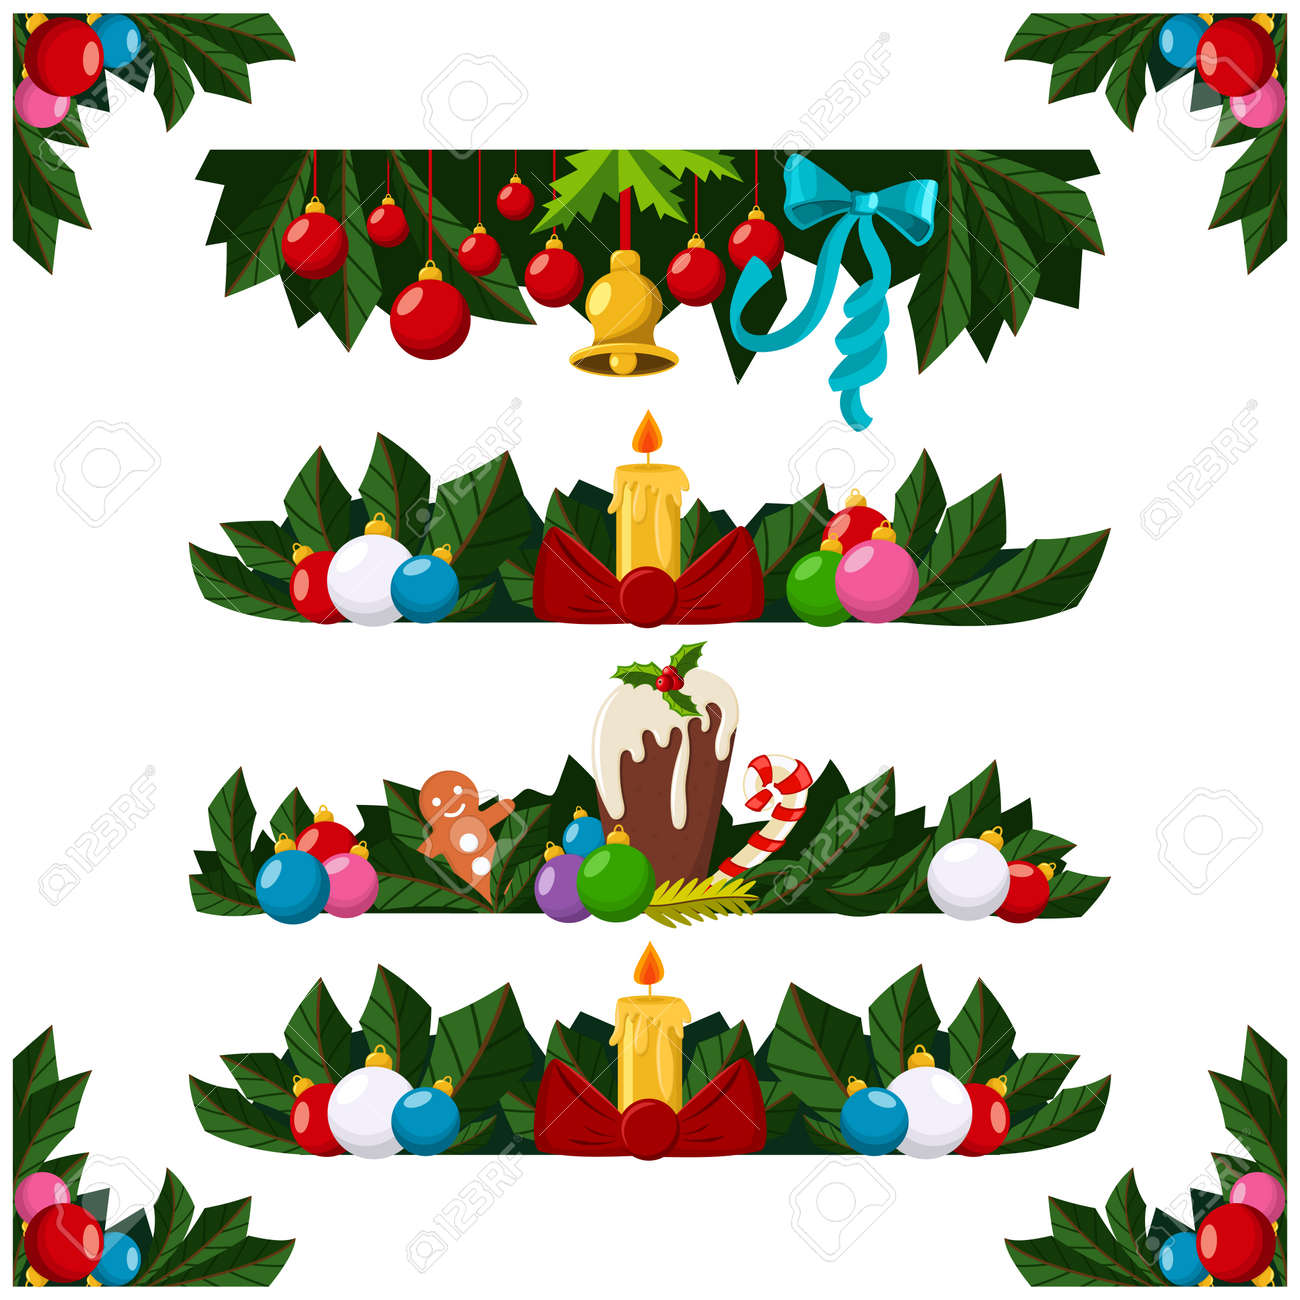 Christmas Decoration Border Frame Or Garland With Xmas Tree Branch Balls Candle